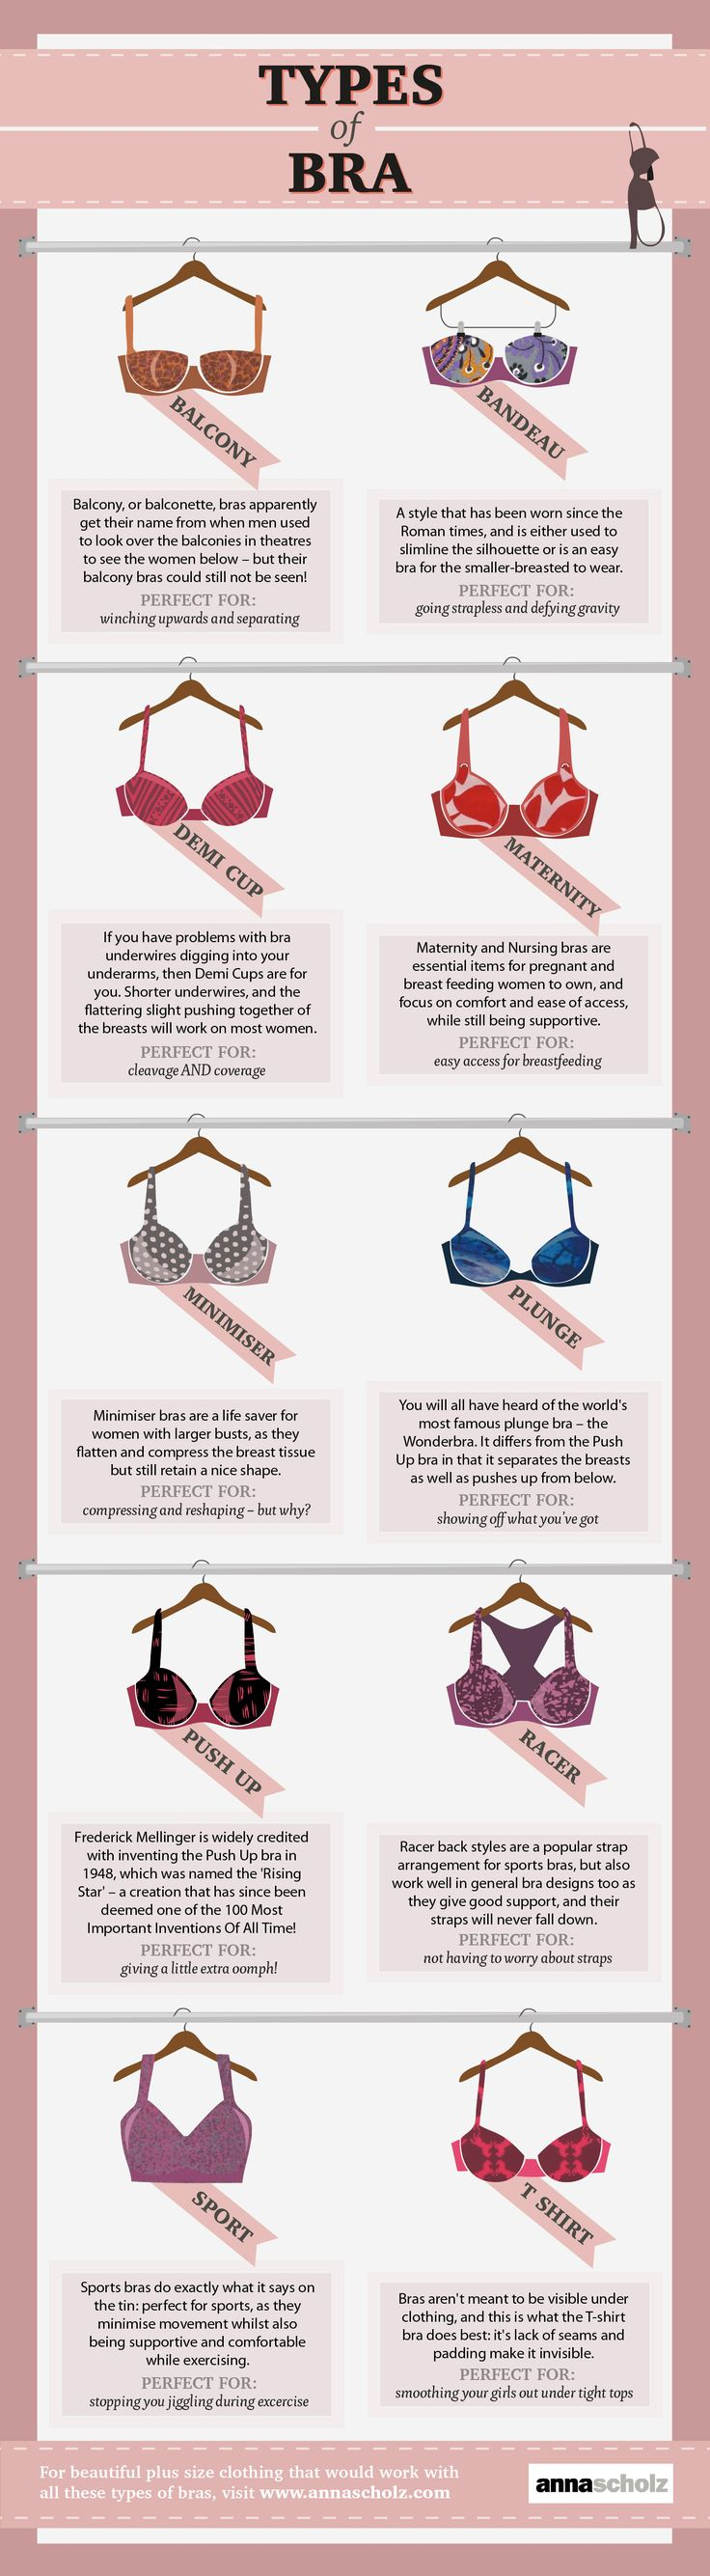 Types of Bra #infographic #Bra #Fashion #Lifestyle